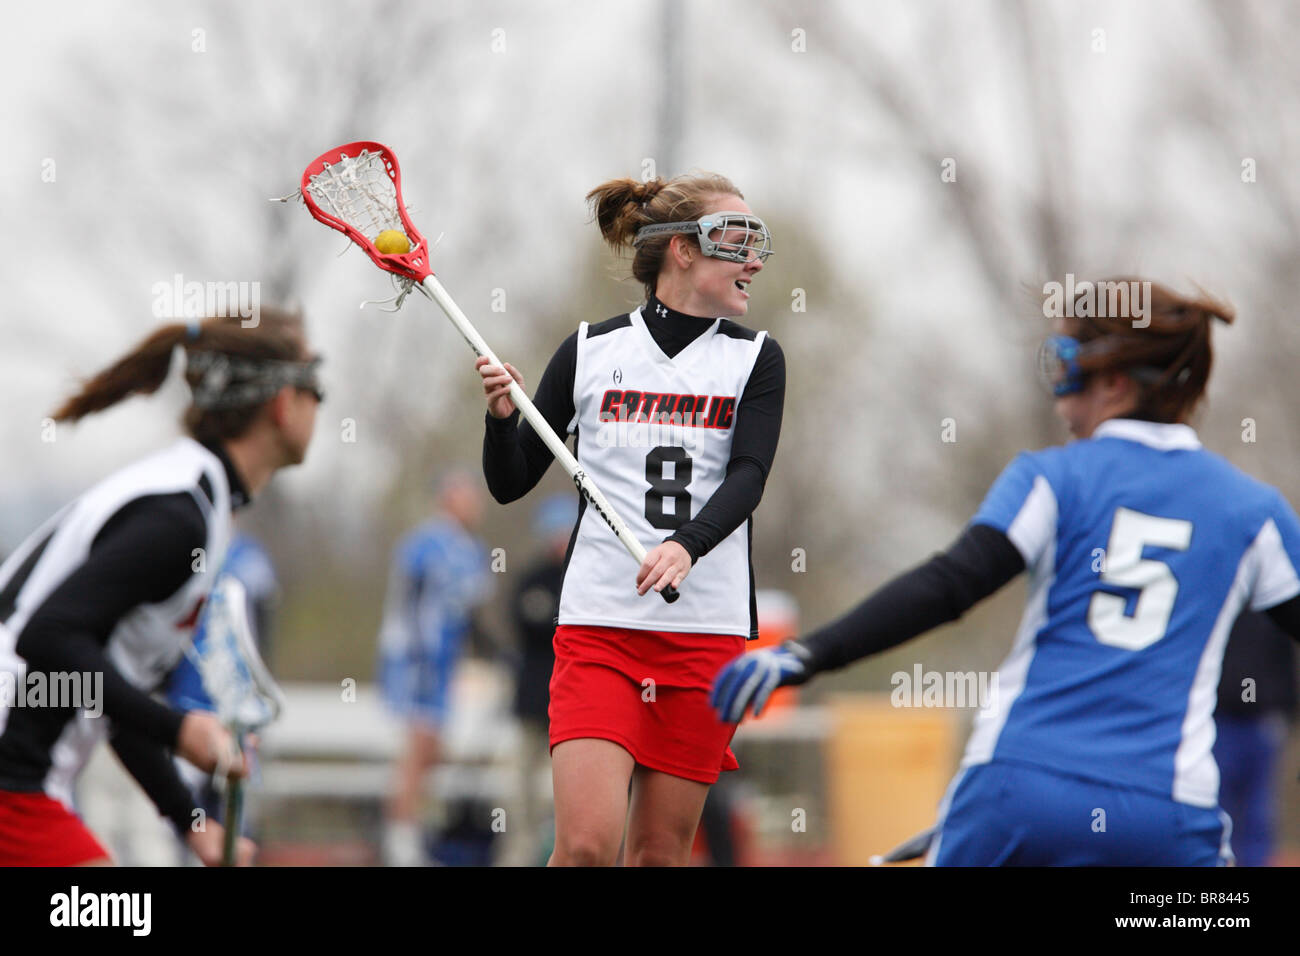 A Catholic University player looks to take a shot against Marymount University during a college lacrosse game April - Stock Image